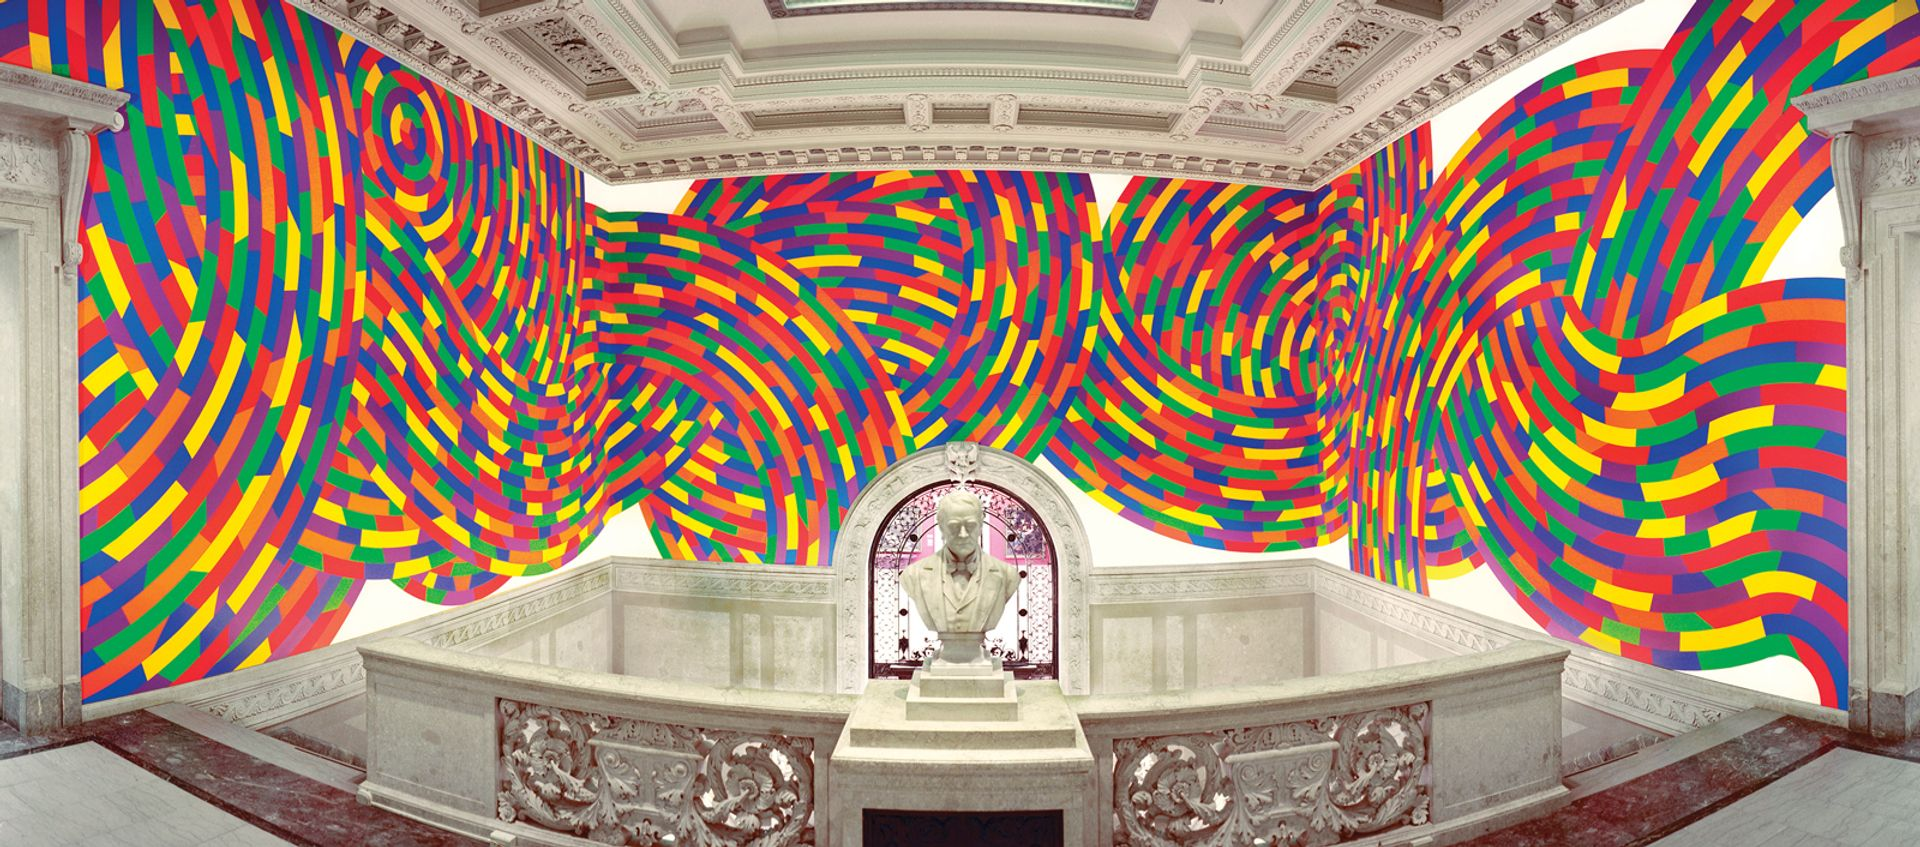 Wall Drawing #1131 (2004) is situated at the Wadsworth Atheneum in Hartford, Connecticut Photo: Allen Phillips; © Estate of Sol LeWitt/Artists Rights Society (ARS), New York; courtesy of Wadsworth Atheneum Museum of Art